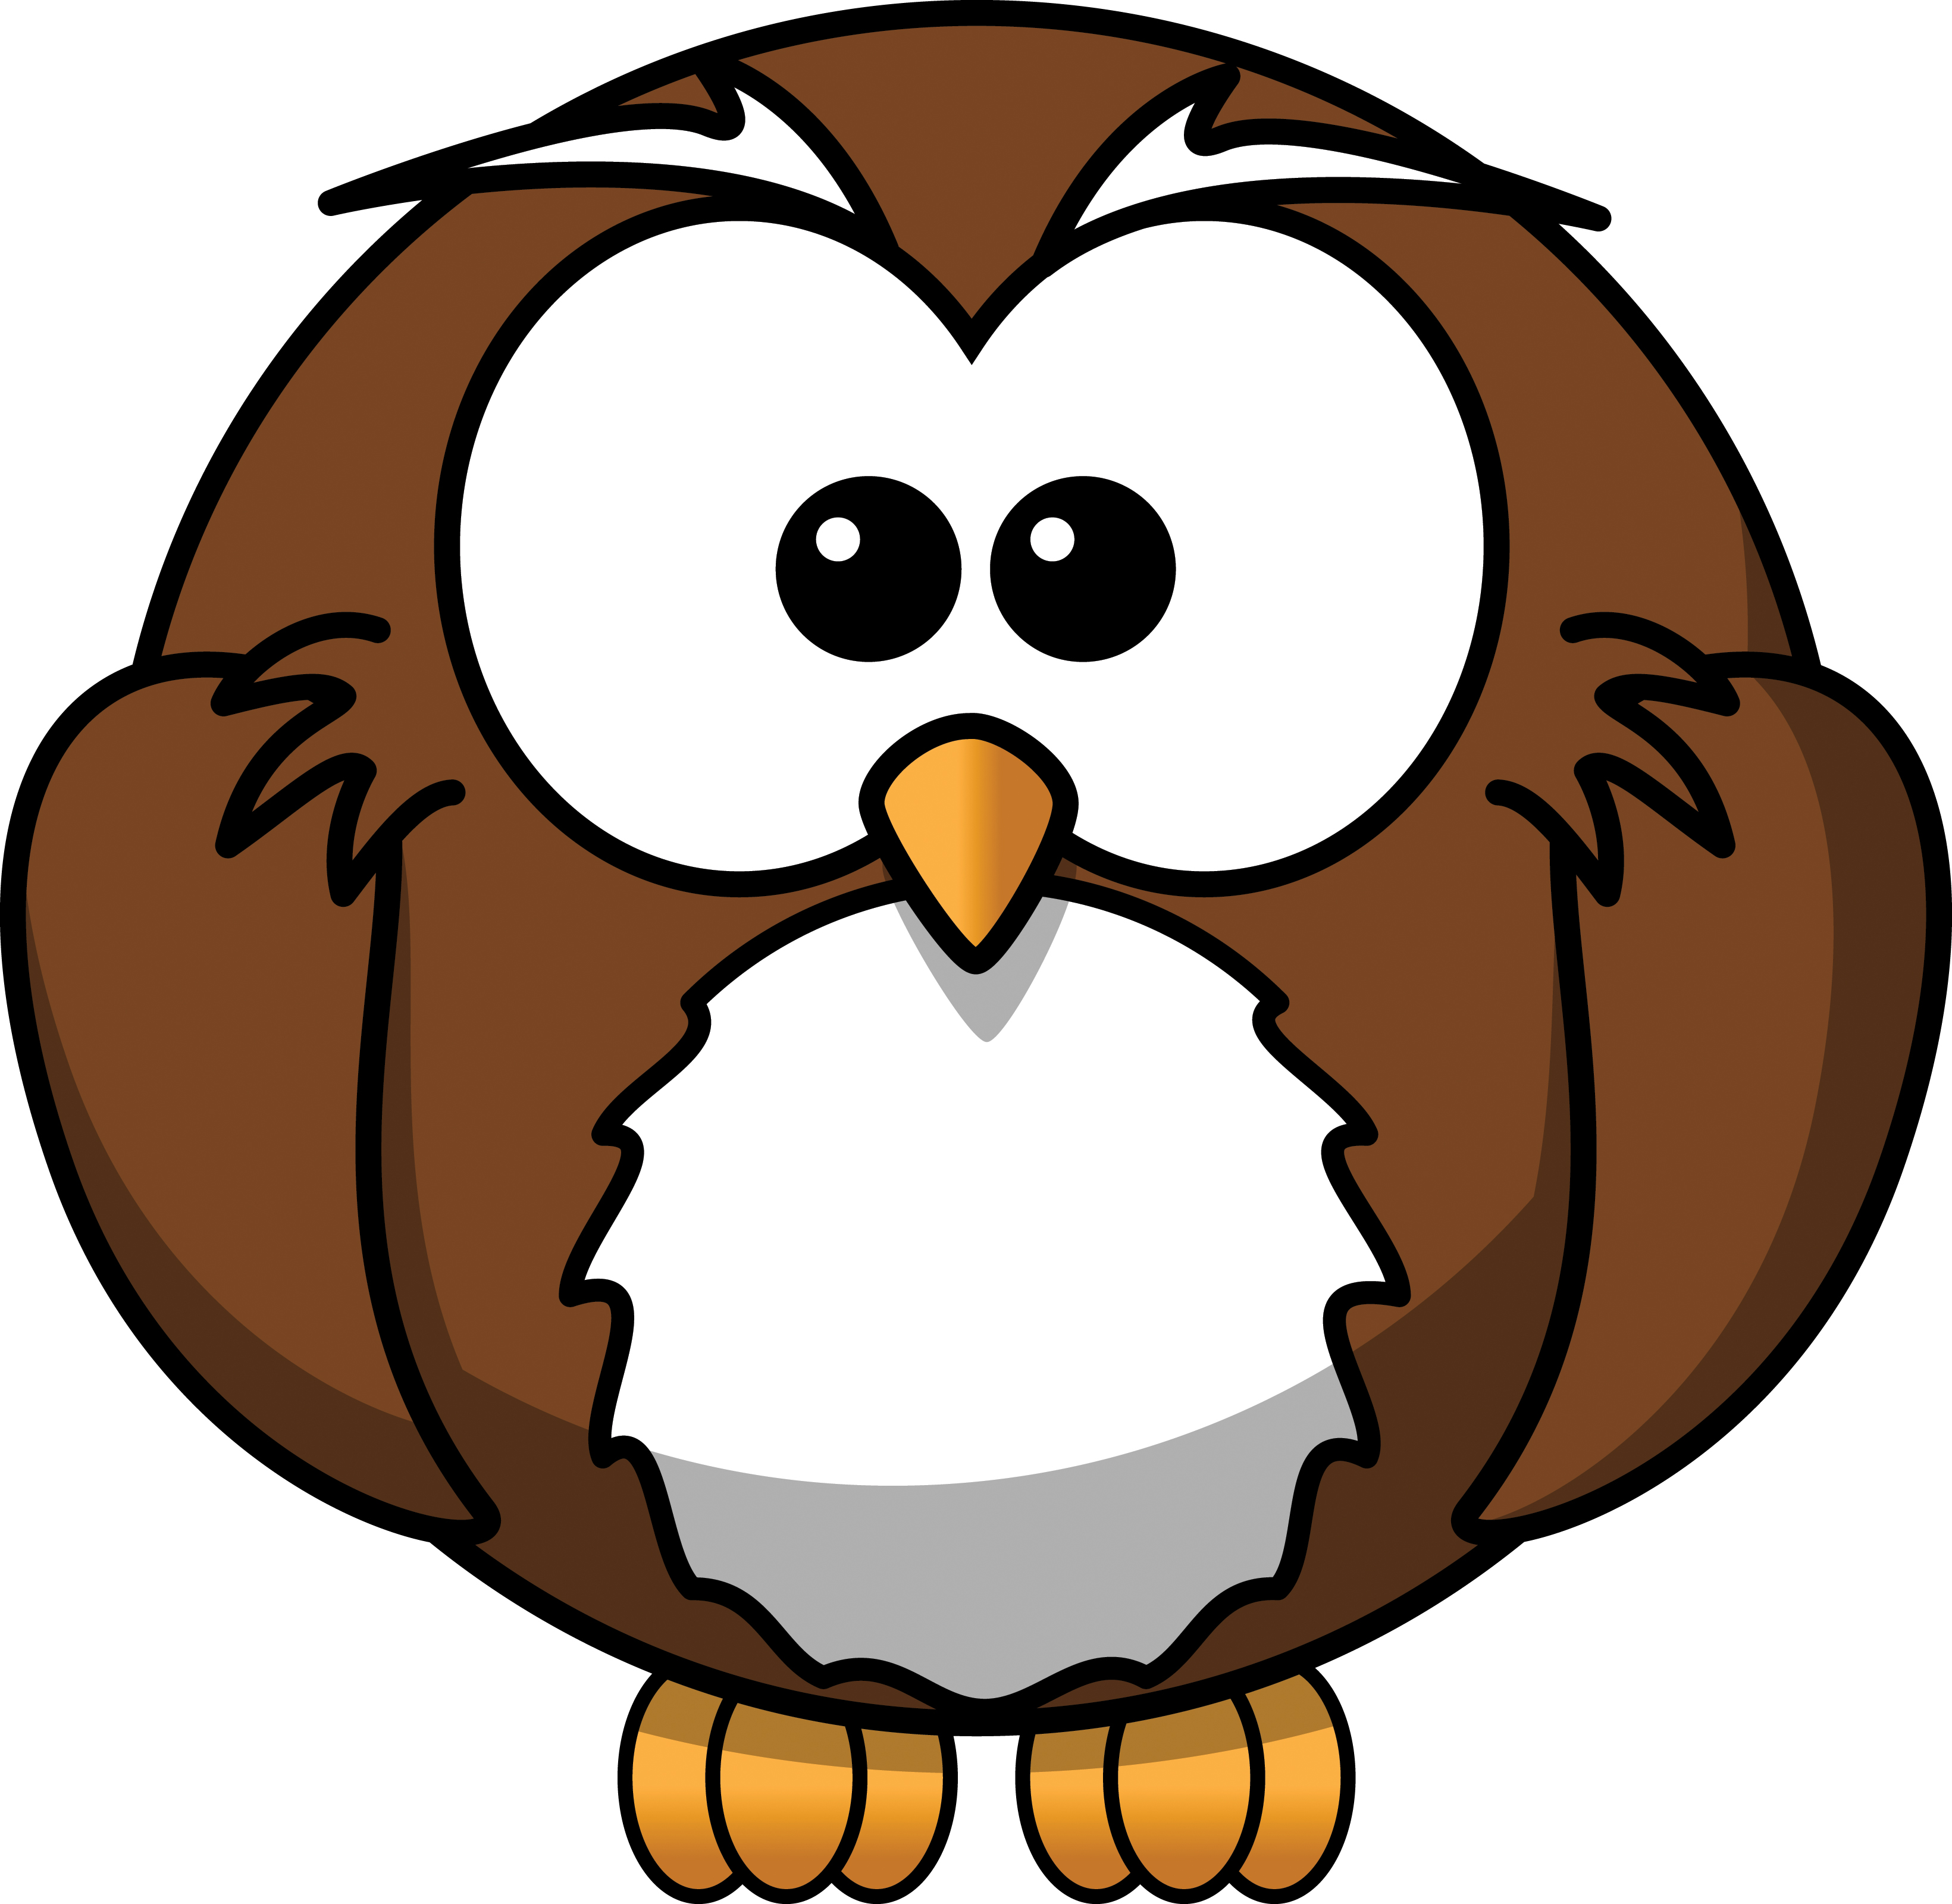 Free Cartoon Owl Clipart By 0001176 .-Free Cartoon Owl Clipart by 0001176 .-8